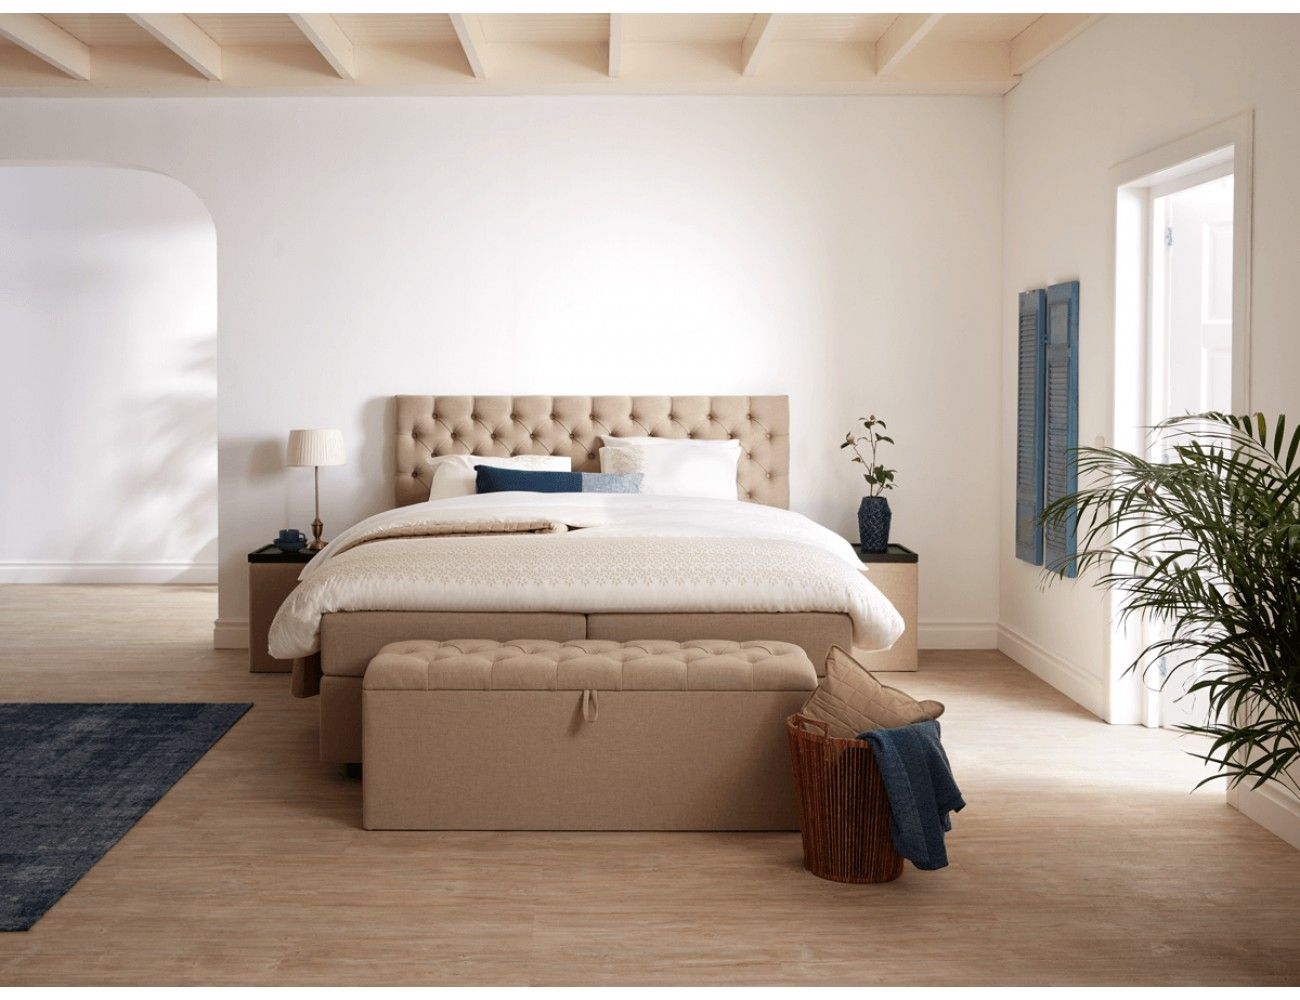 Luxor boxspring aanbieding persoons boxspring bed